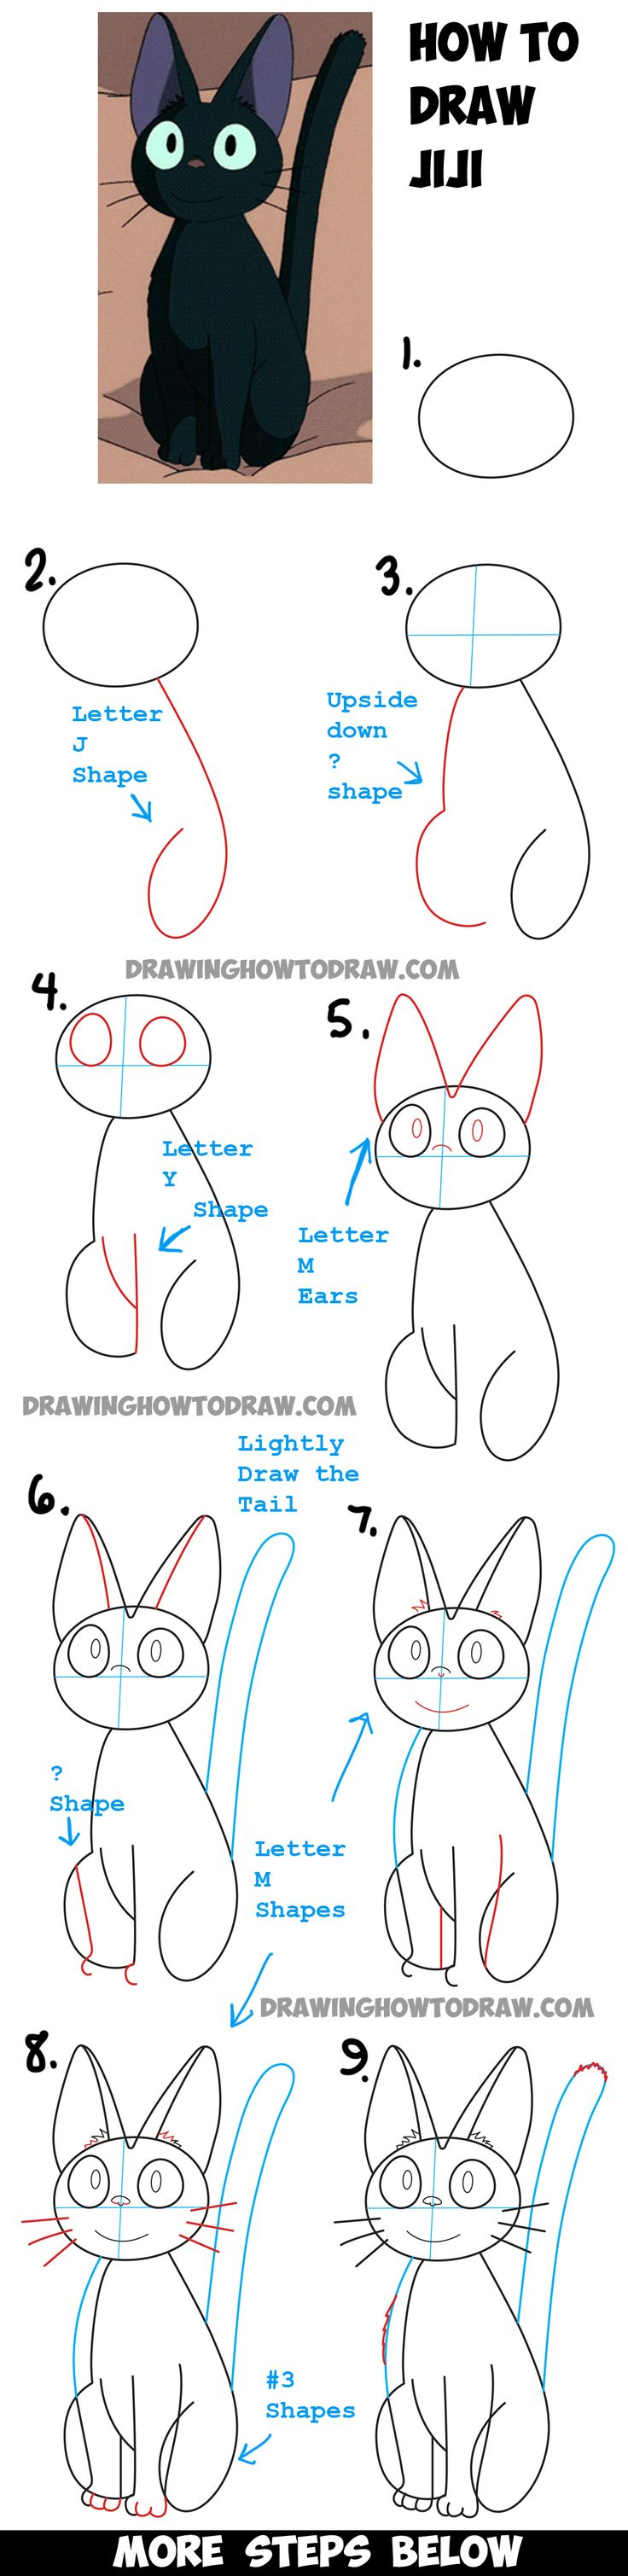 Learn How To Draw Jiji From Kiki's Delivery Service  Simple Steps Drawing  Lesson